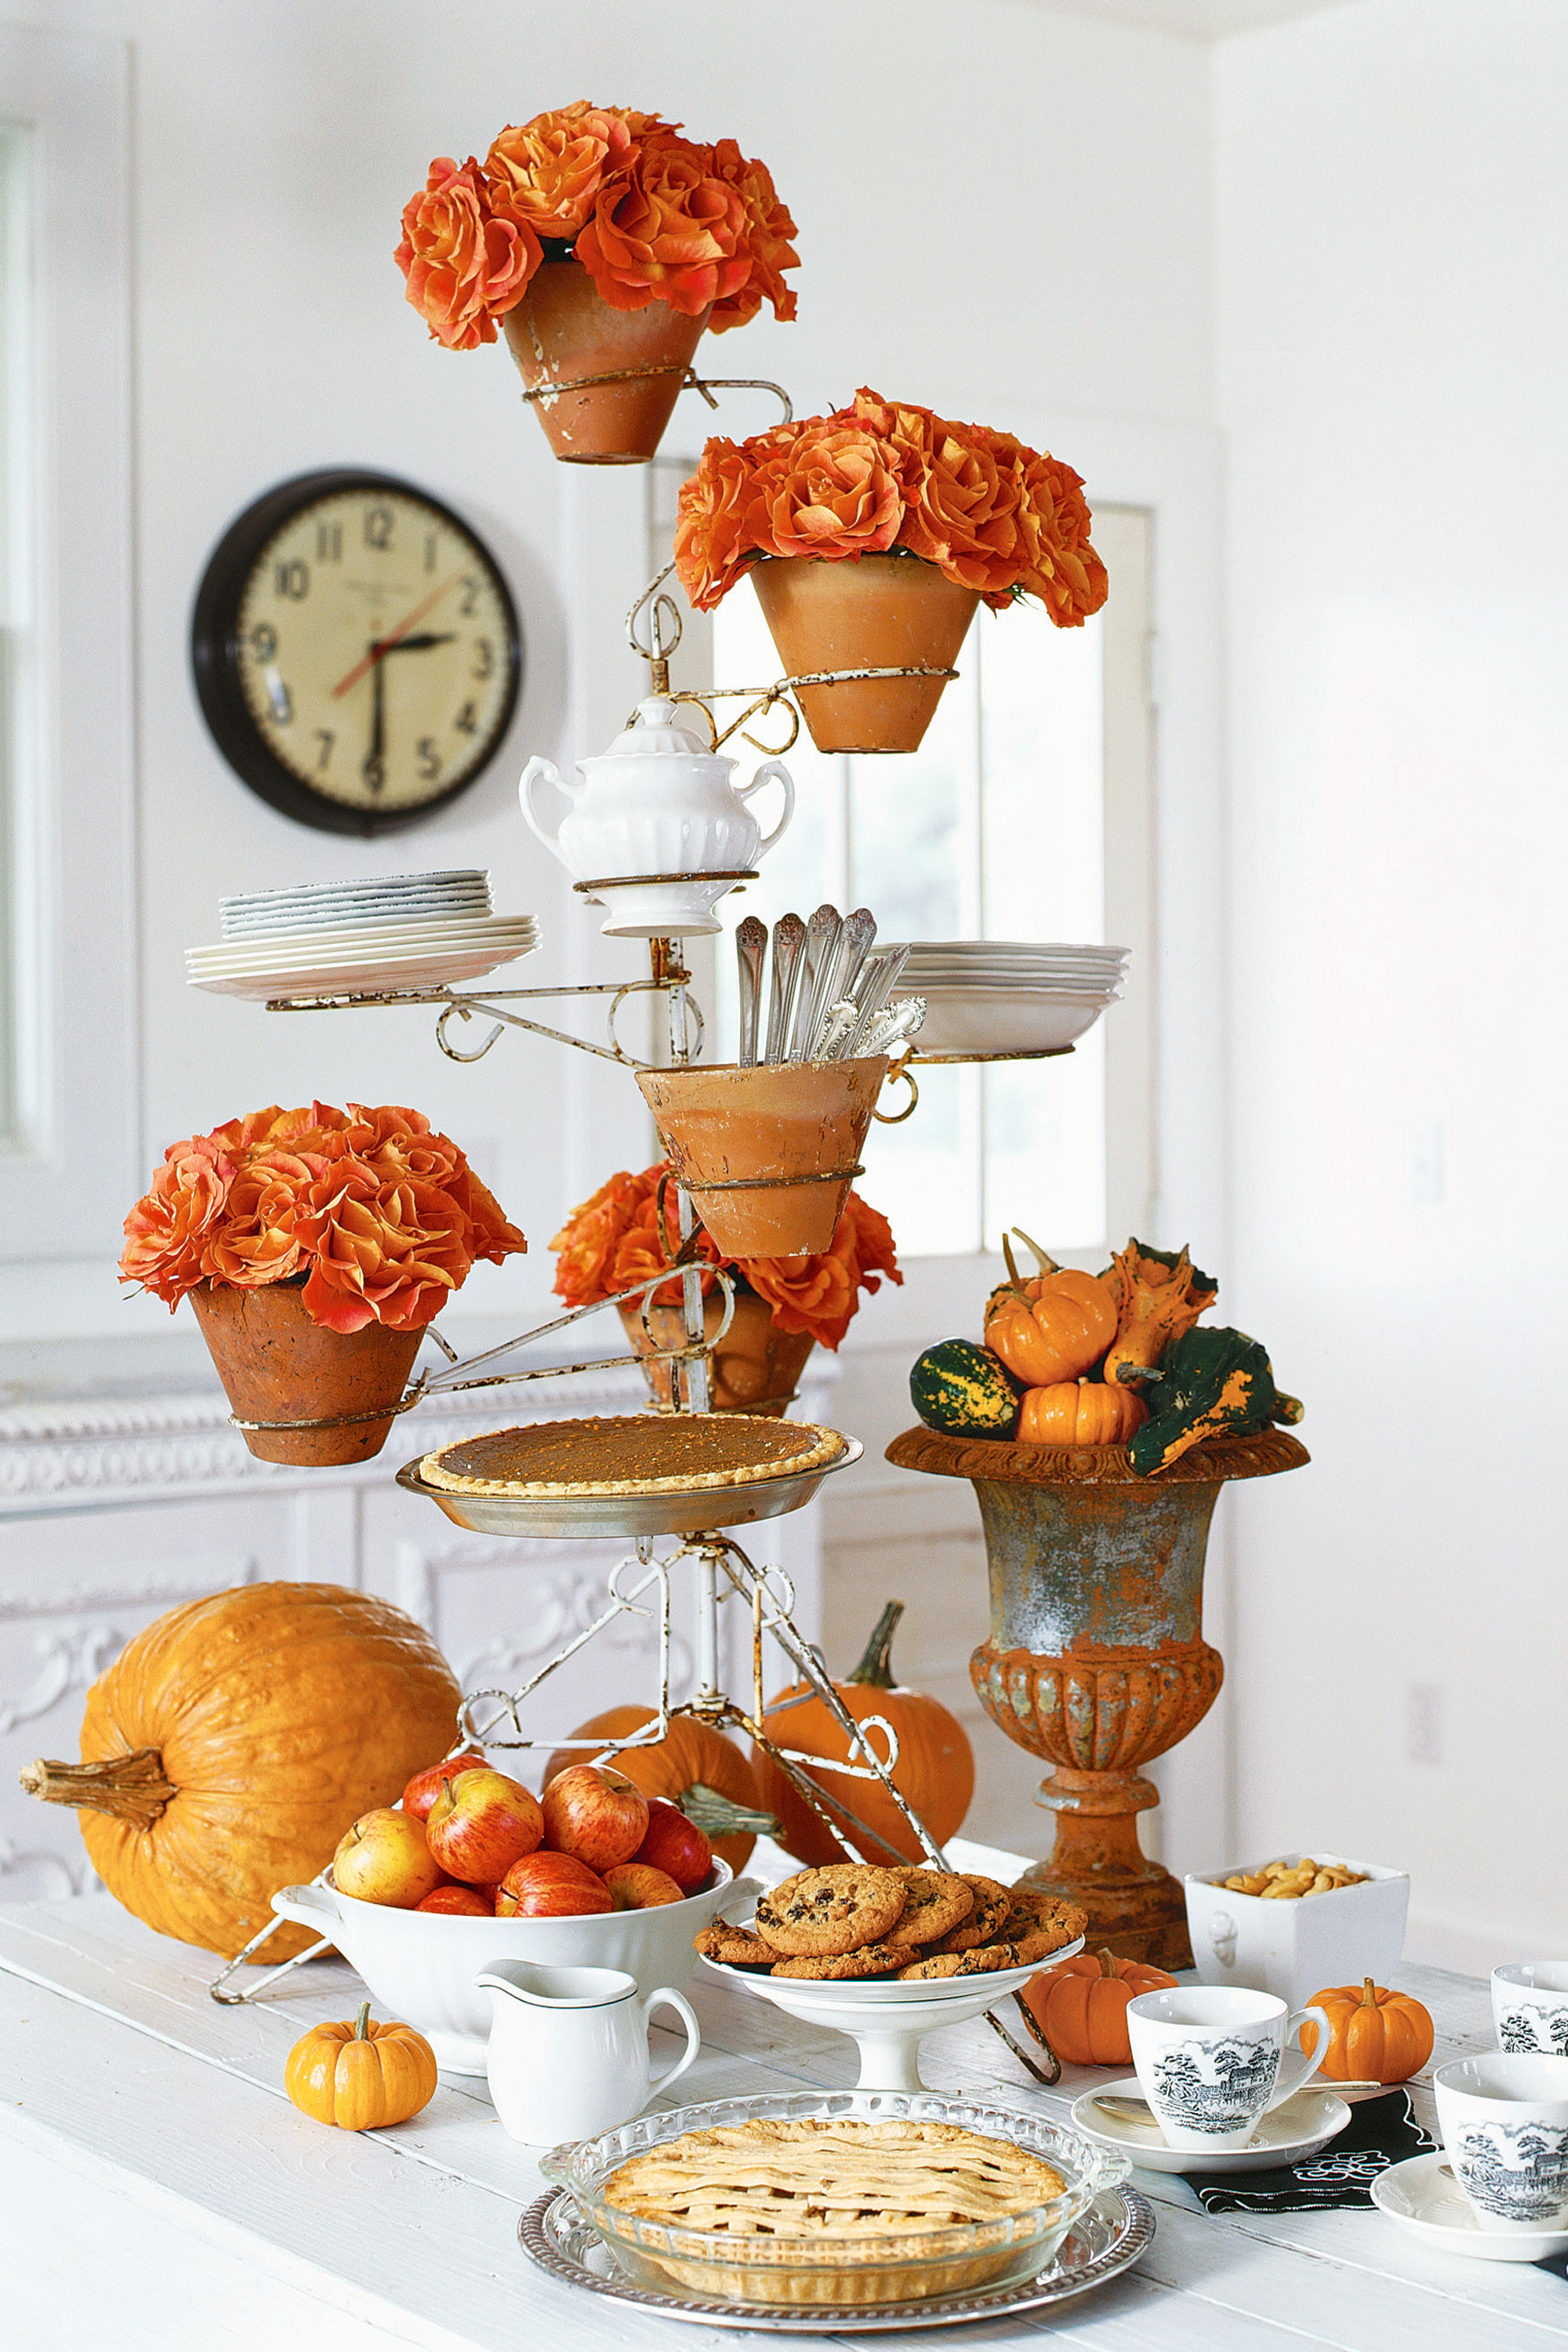 Table Decorations For Thanksgiving  How to Turn Your Thanksgiving Decor Into a Success